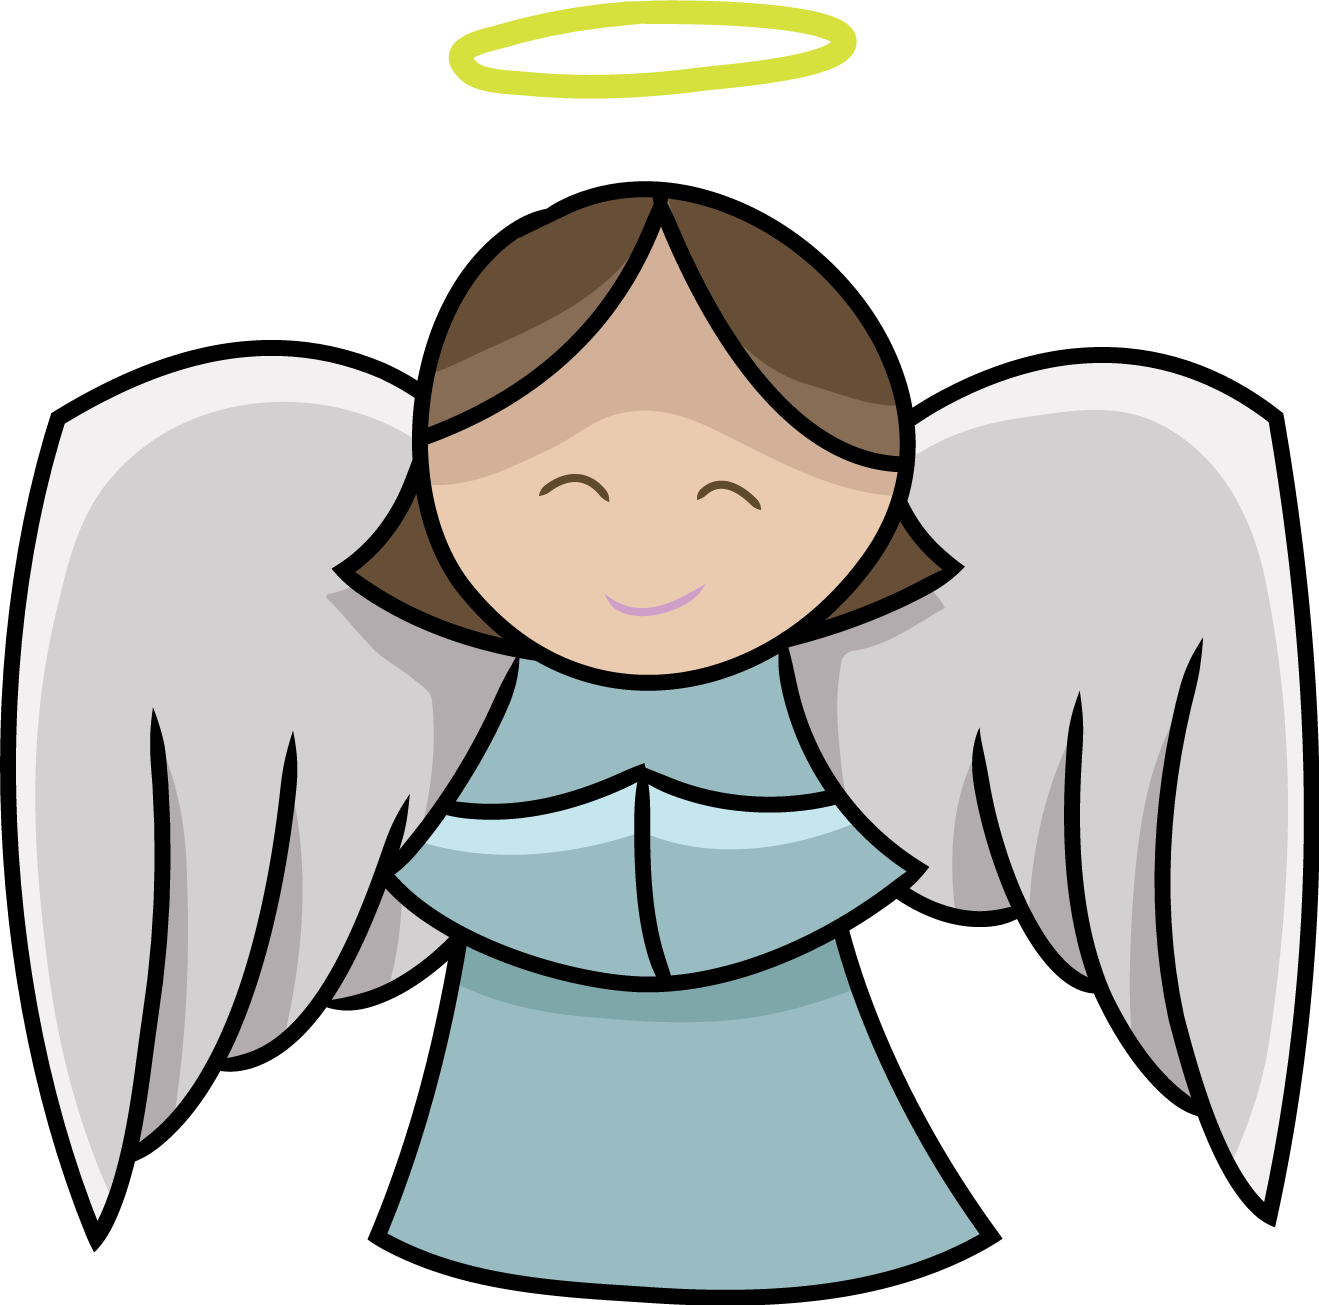 Angel of the lord clipart graphic Clipart Angel & Look At Clip Art Images - ClipartLook graphic